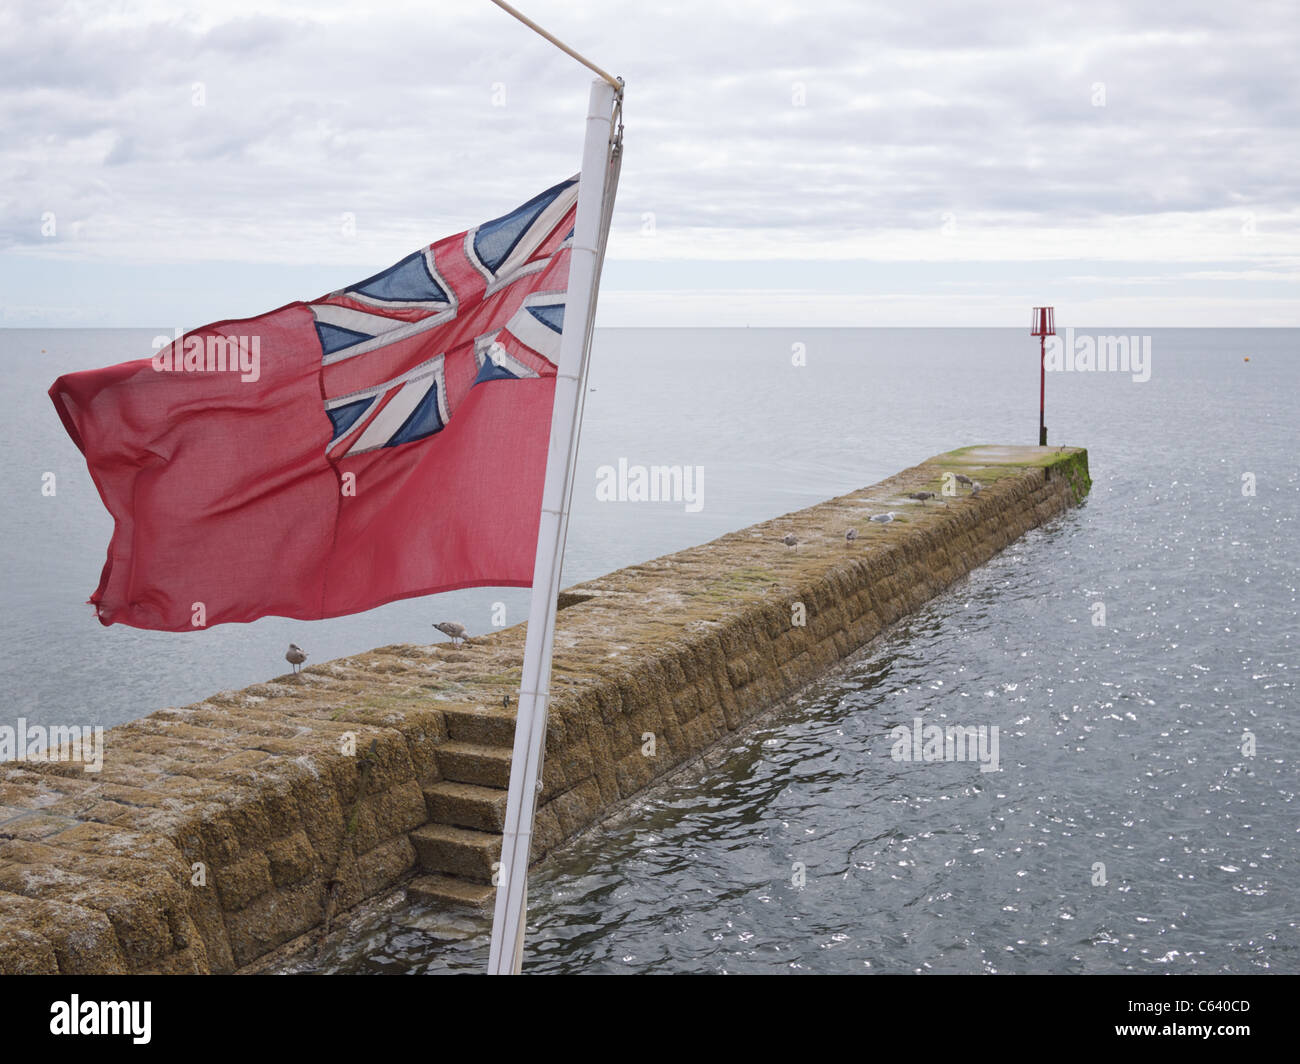 Red Duster Flag on the back of a boat, Dawlish, Devon. - Stock Image